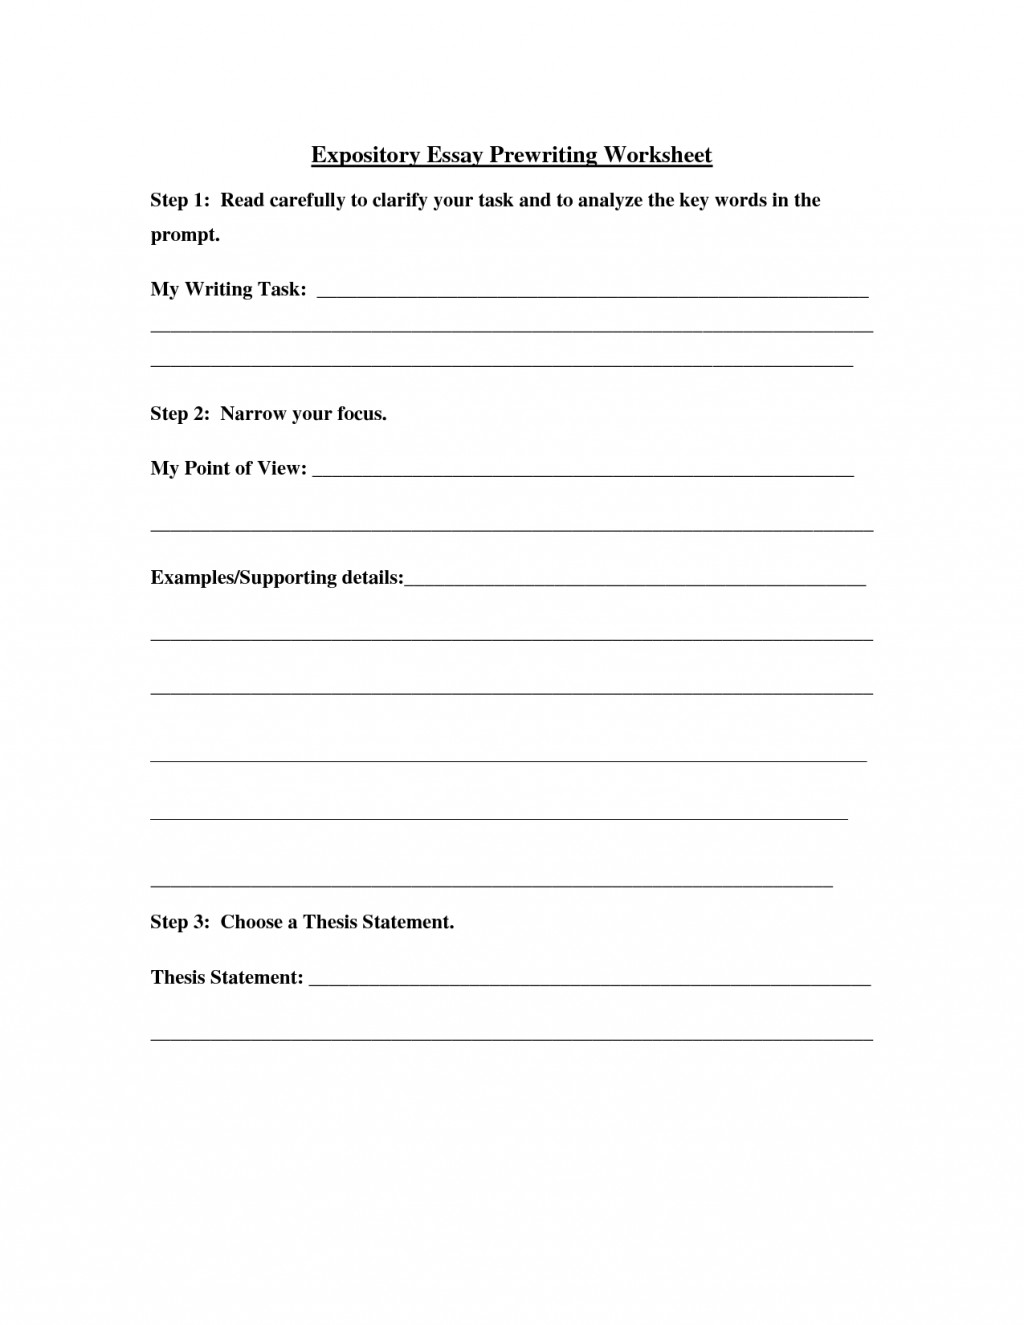 004 Pre Writing Worksheets Essay 295850 Example Written Formidable Essays For Sale Buy Online Scholarship Large